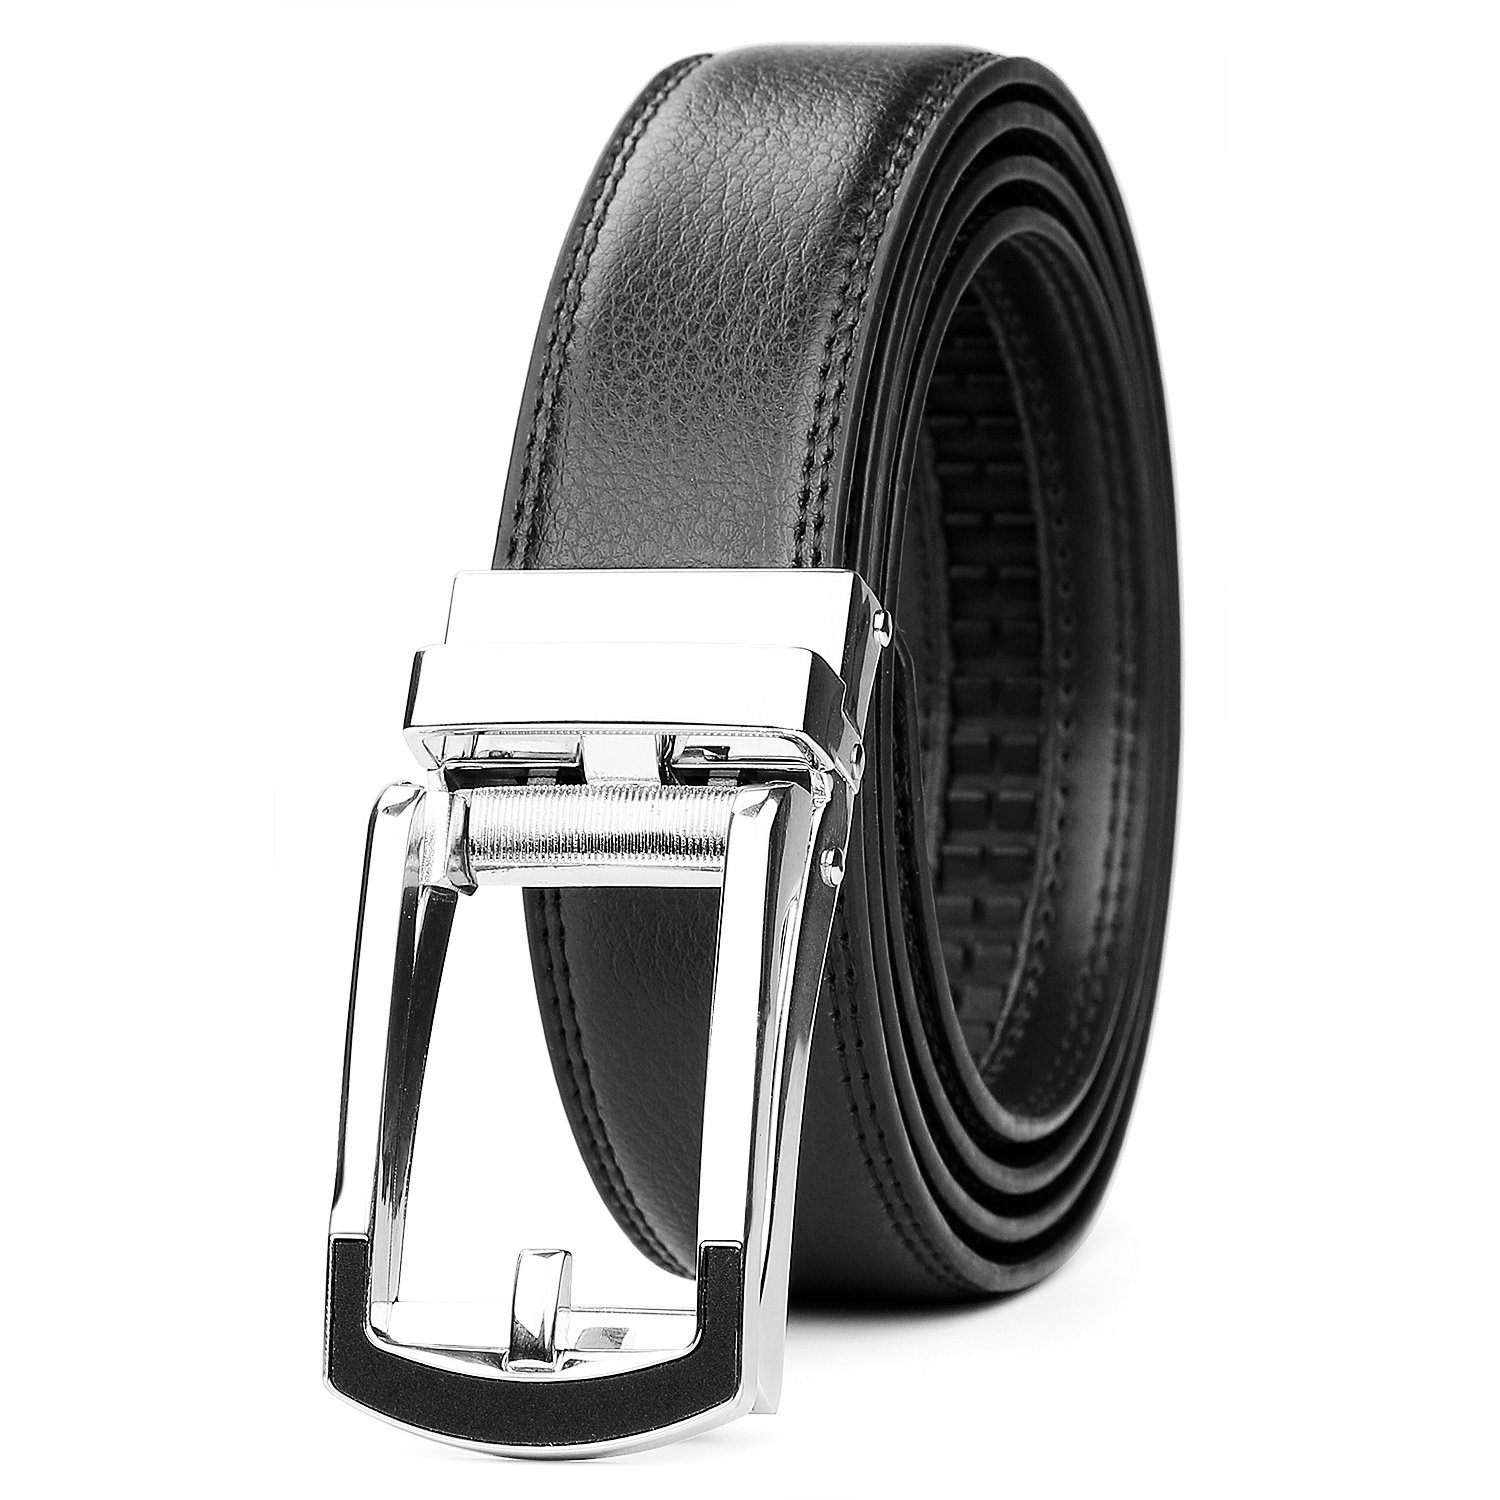 WERFORU Leather Ratchet Dress Belt for Men Perfect Fit Waist Size Up to 44'' with Automatic Buckle